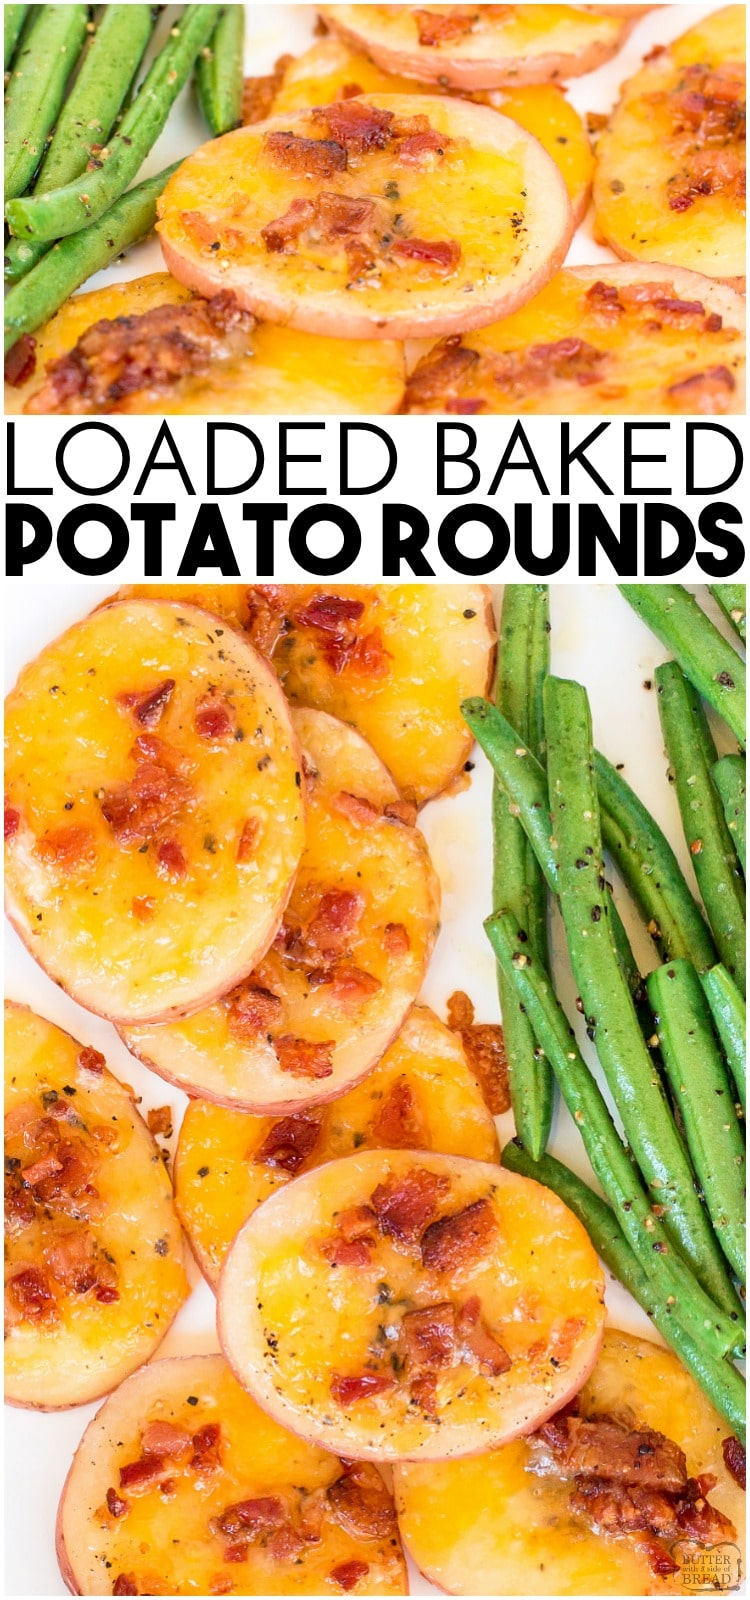 Loaded Baked Potato Rounds are quick and easy to make. Baked potatoes sliced thin and topped with bacon, cheese and sour cream! Perfect appetizer or side dish.